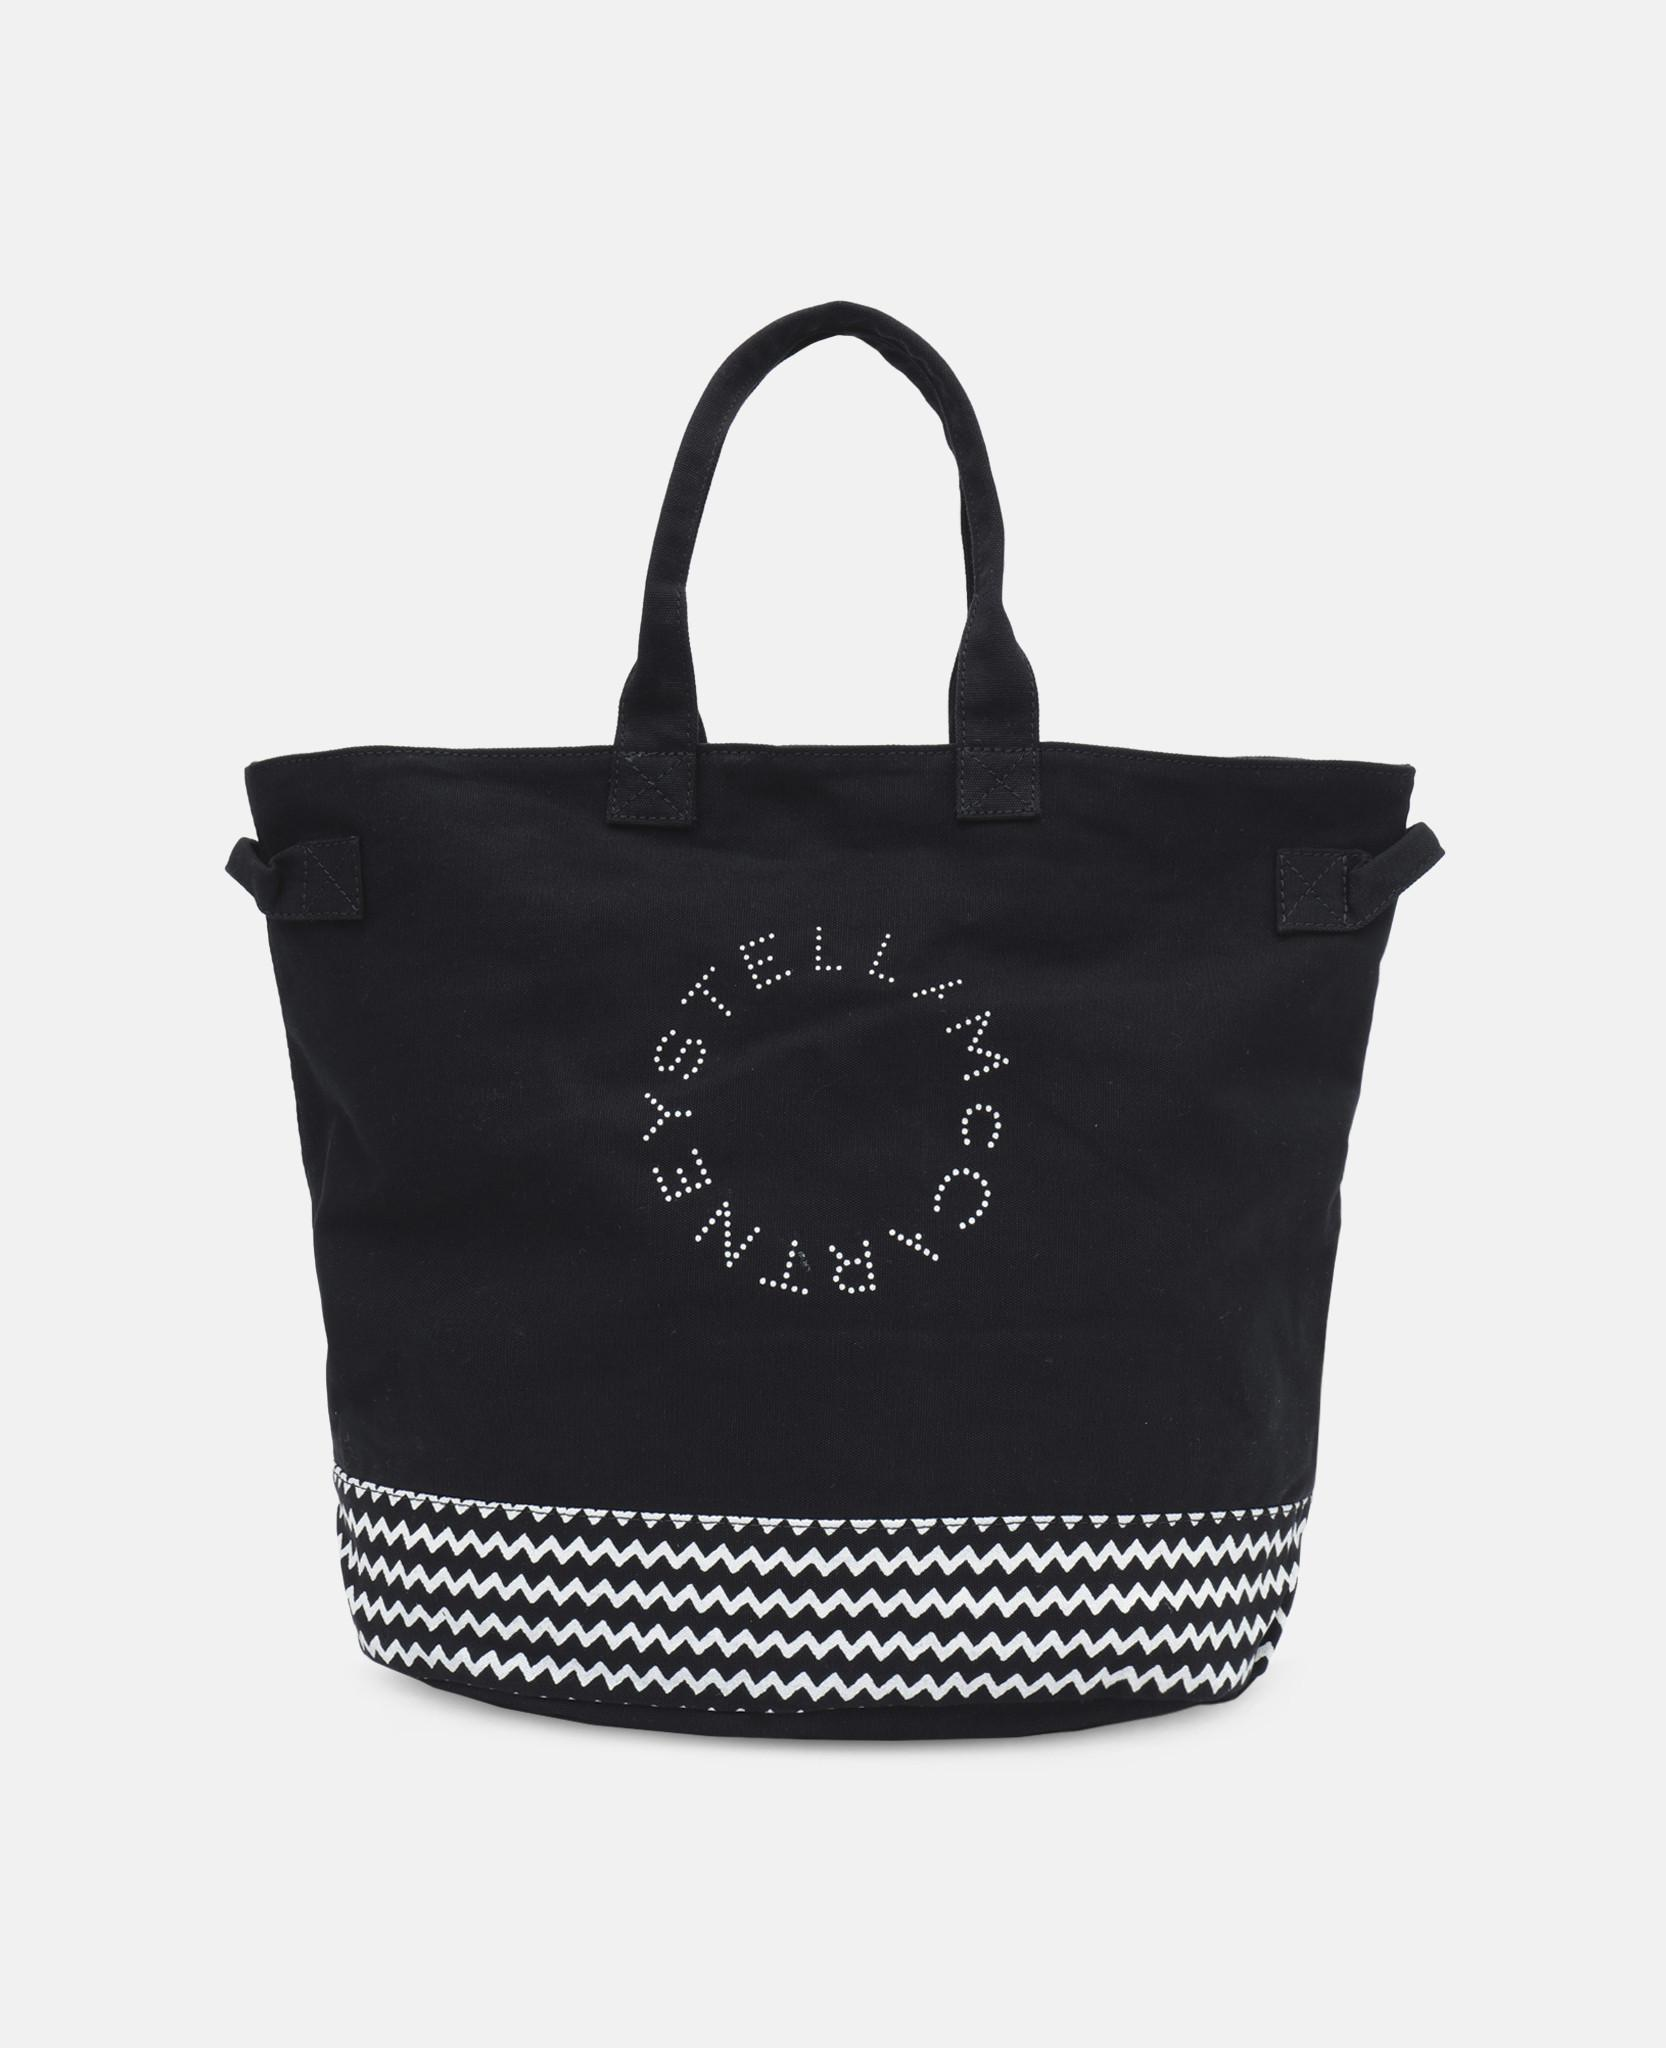 20695df249 Lyst - Stella Mccartney Swim Accessories in Black